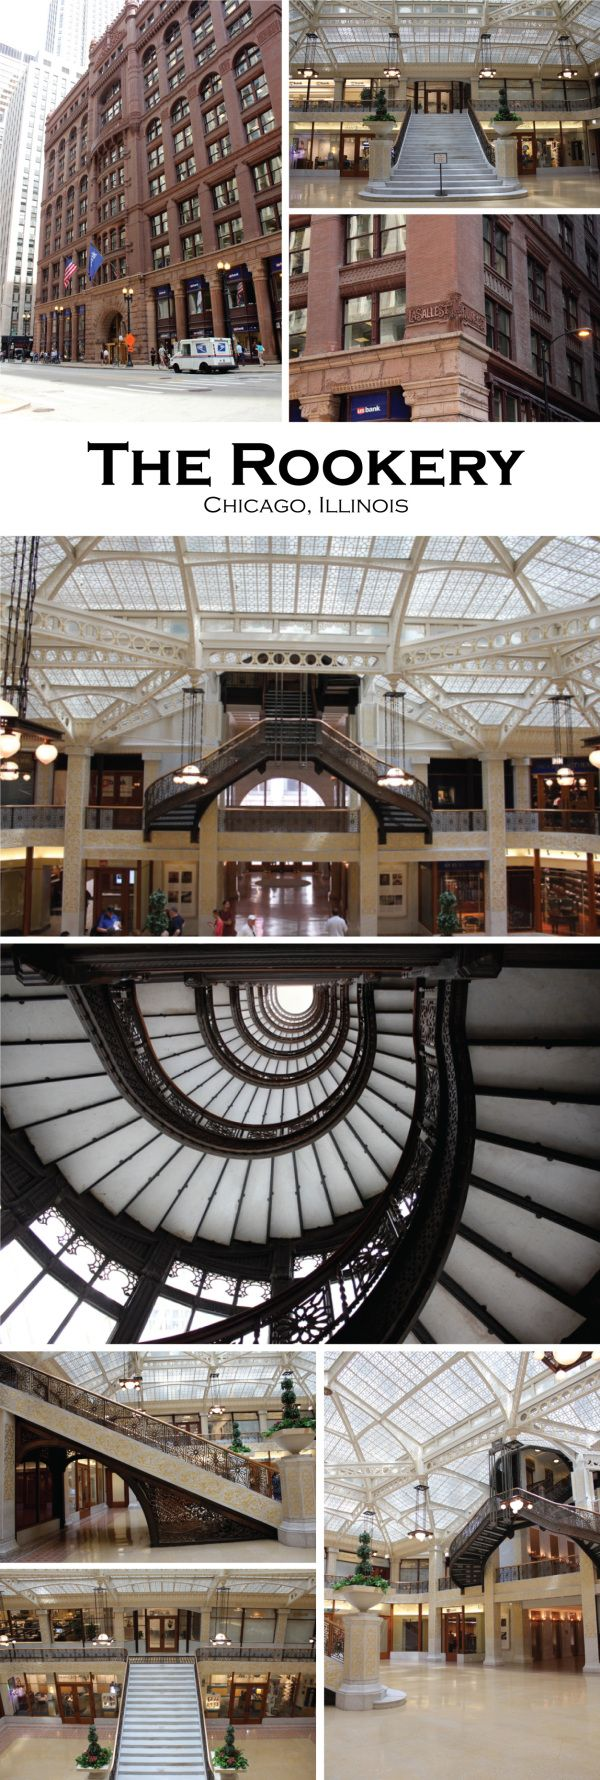 Burnham & Root, The Rookery Building. Frank Lloyd Wright renovated the Light Court in 1905 ( he did not touch the Oriel Staircase, that is Root's original design and installation). The Rookery, Chicago | Redesigned By M